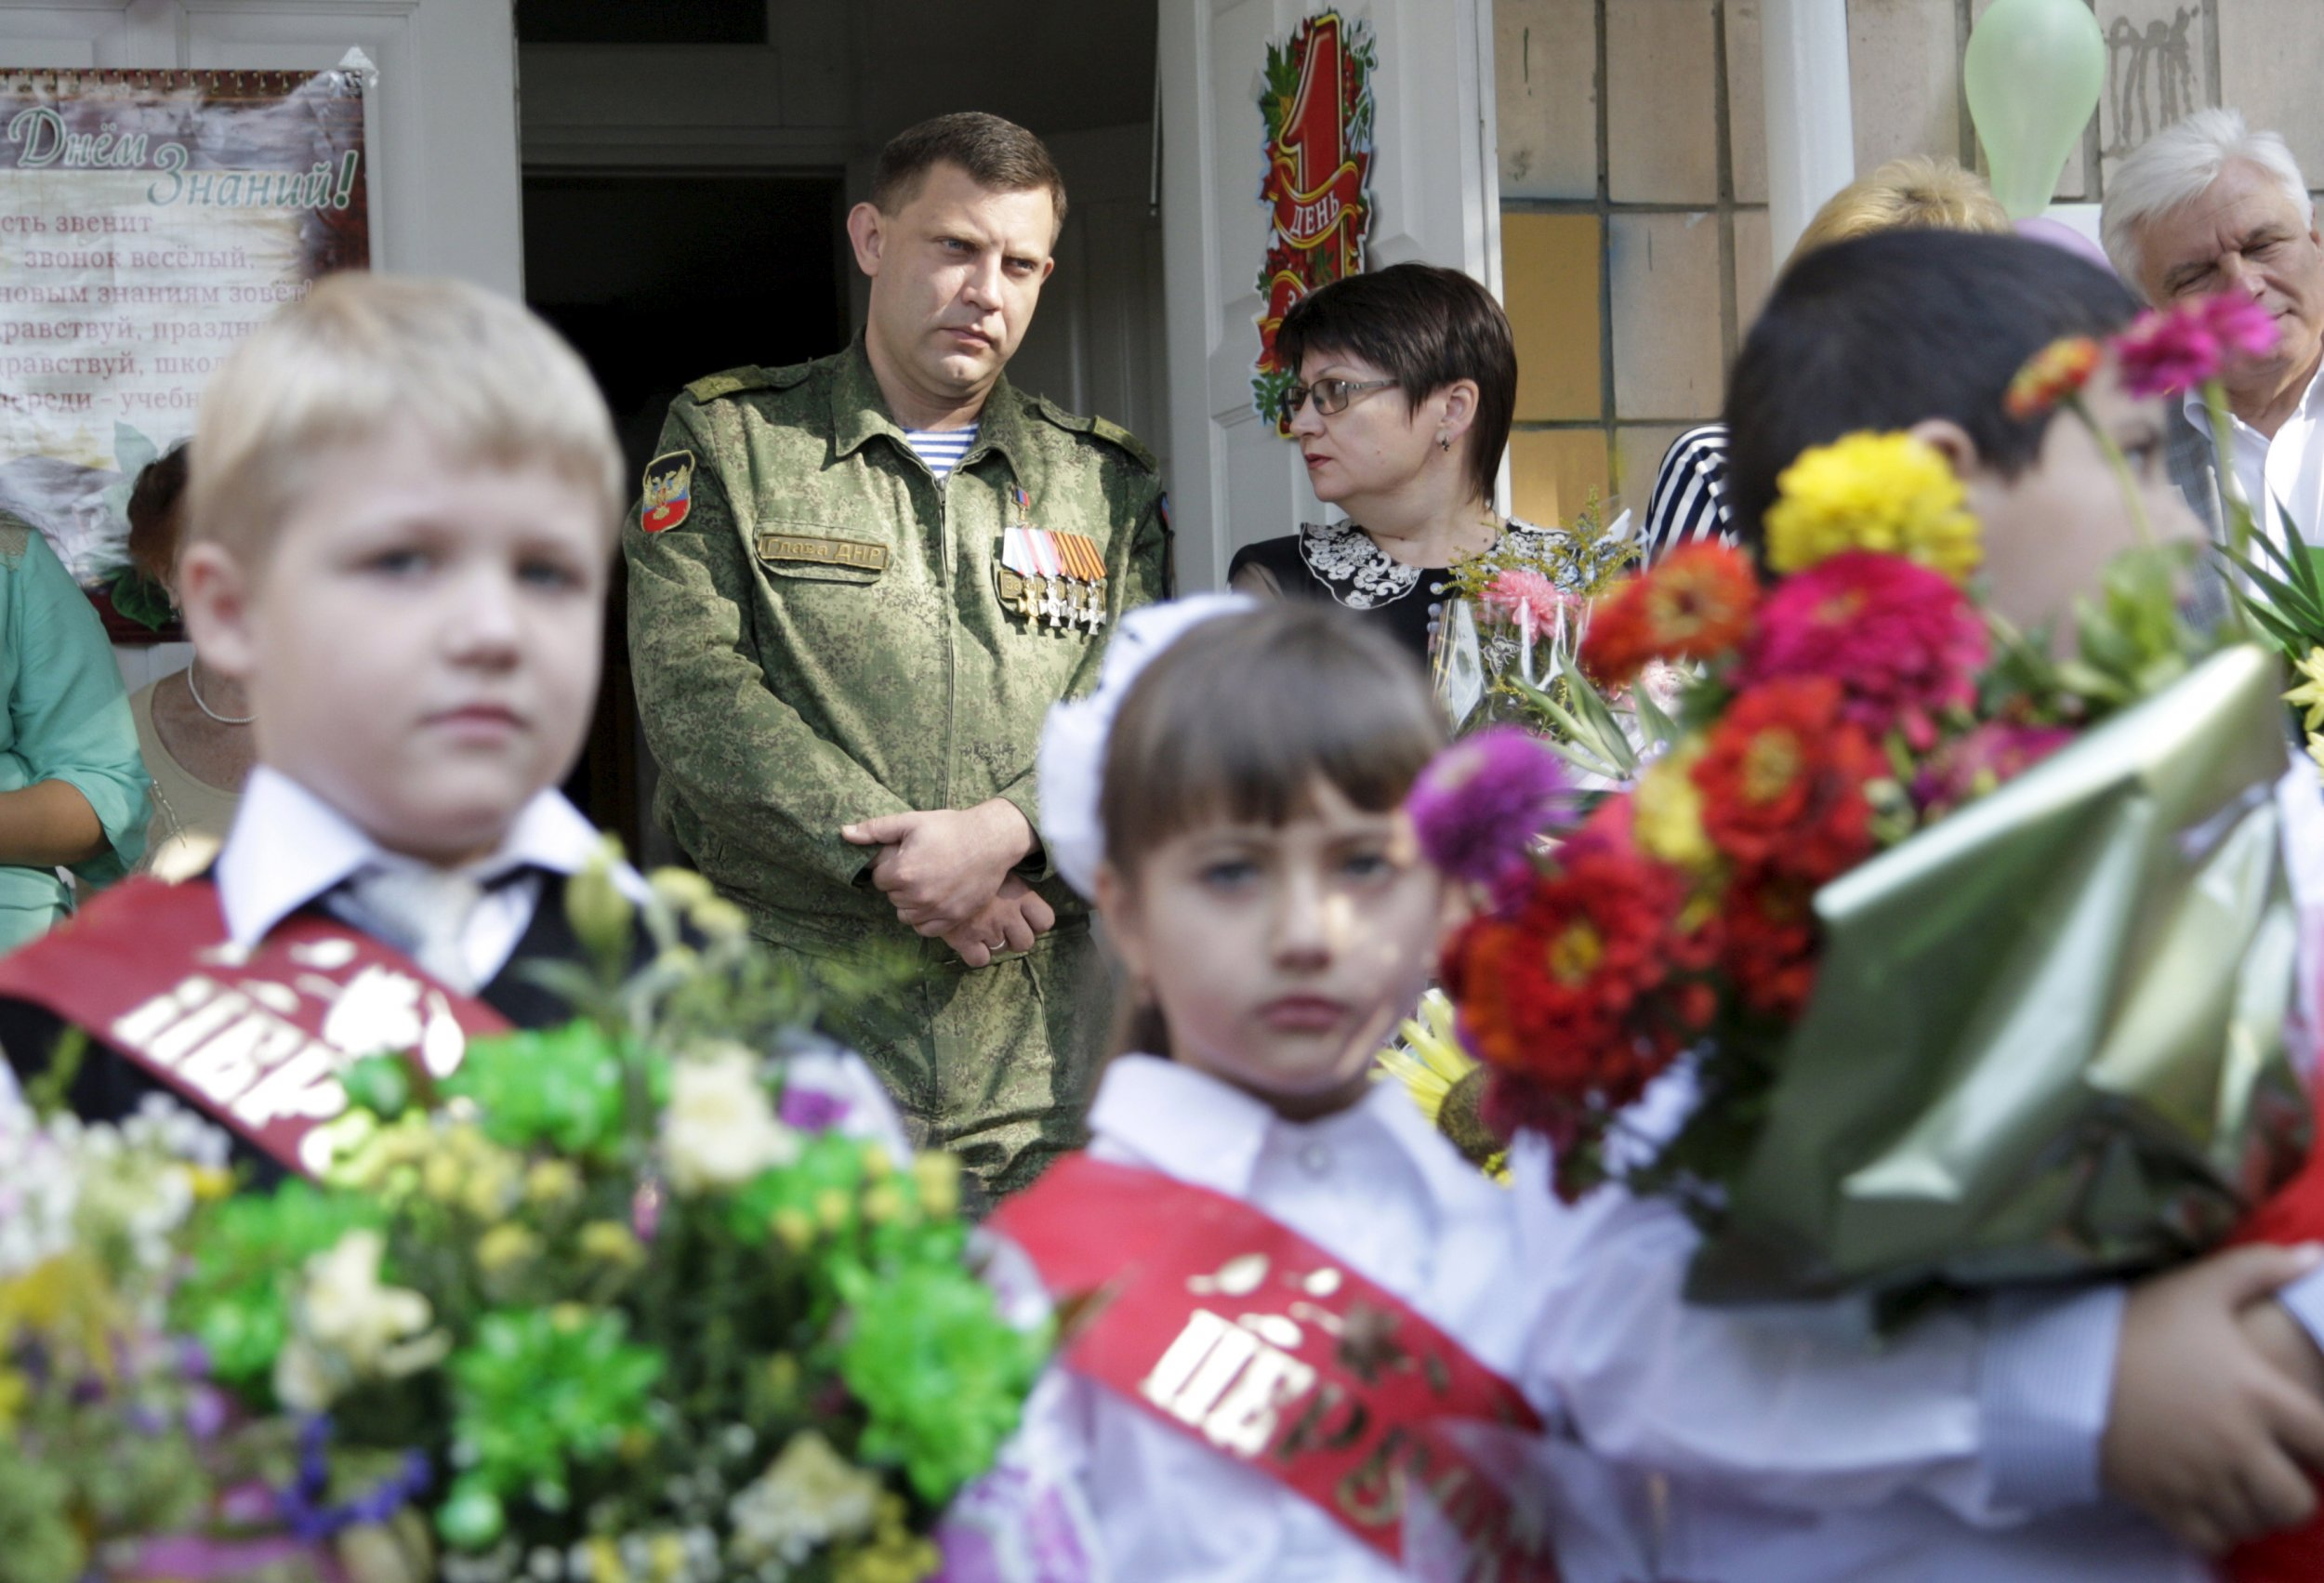 First day of school in Donetsk